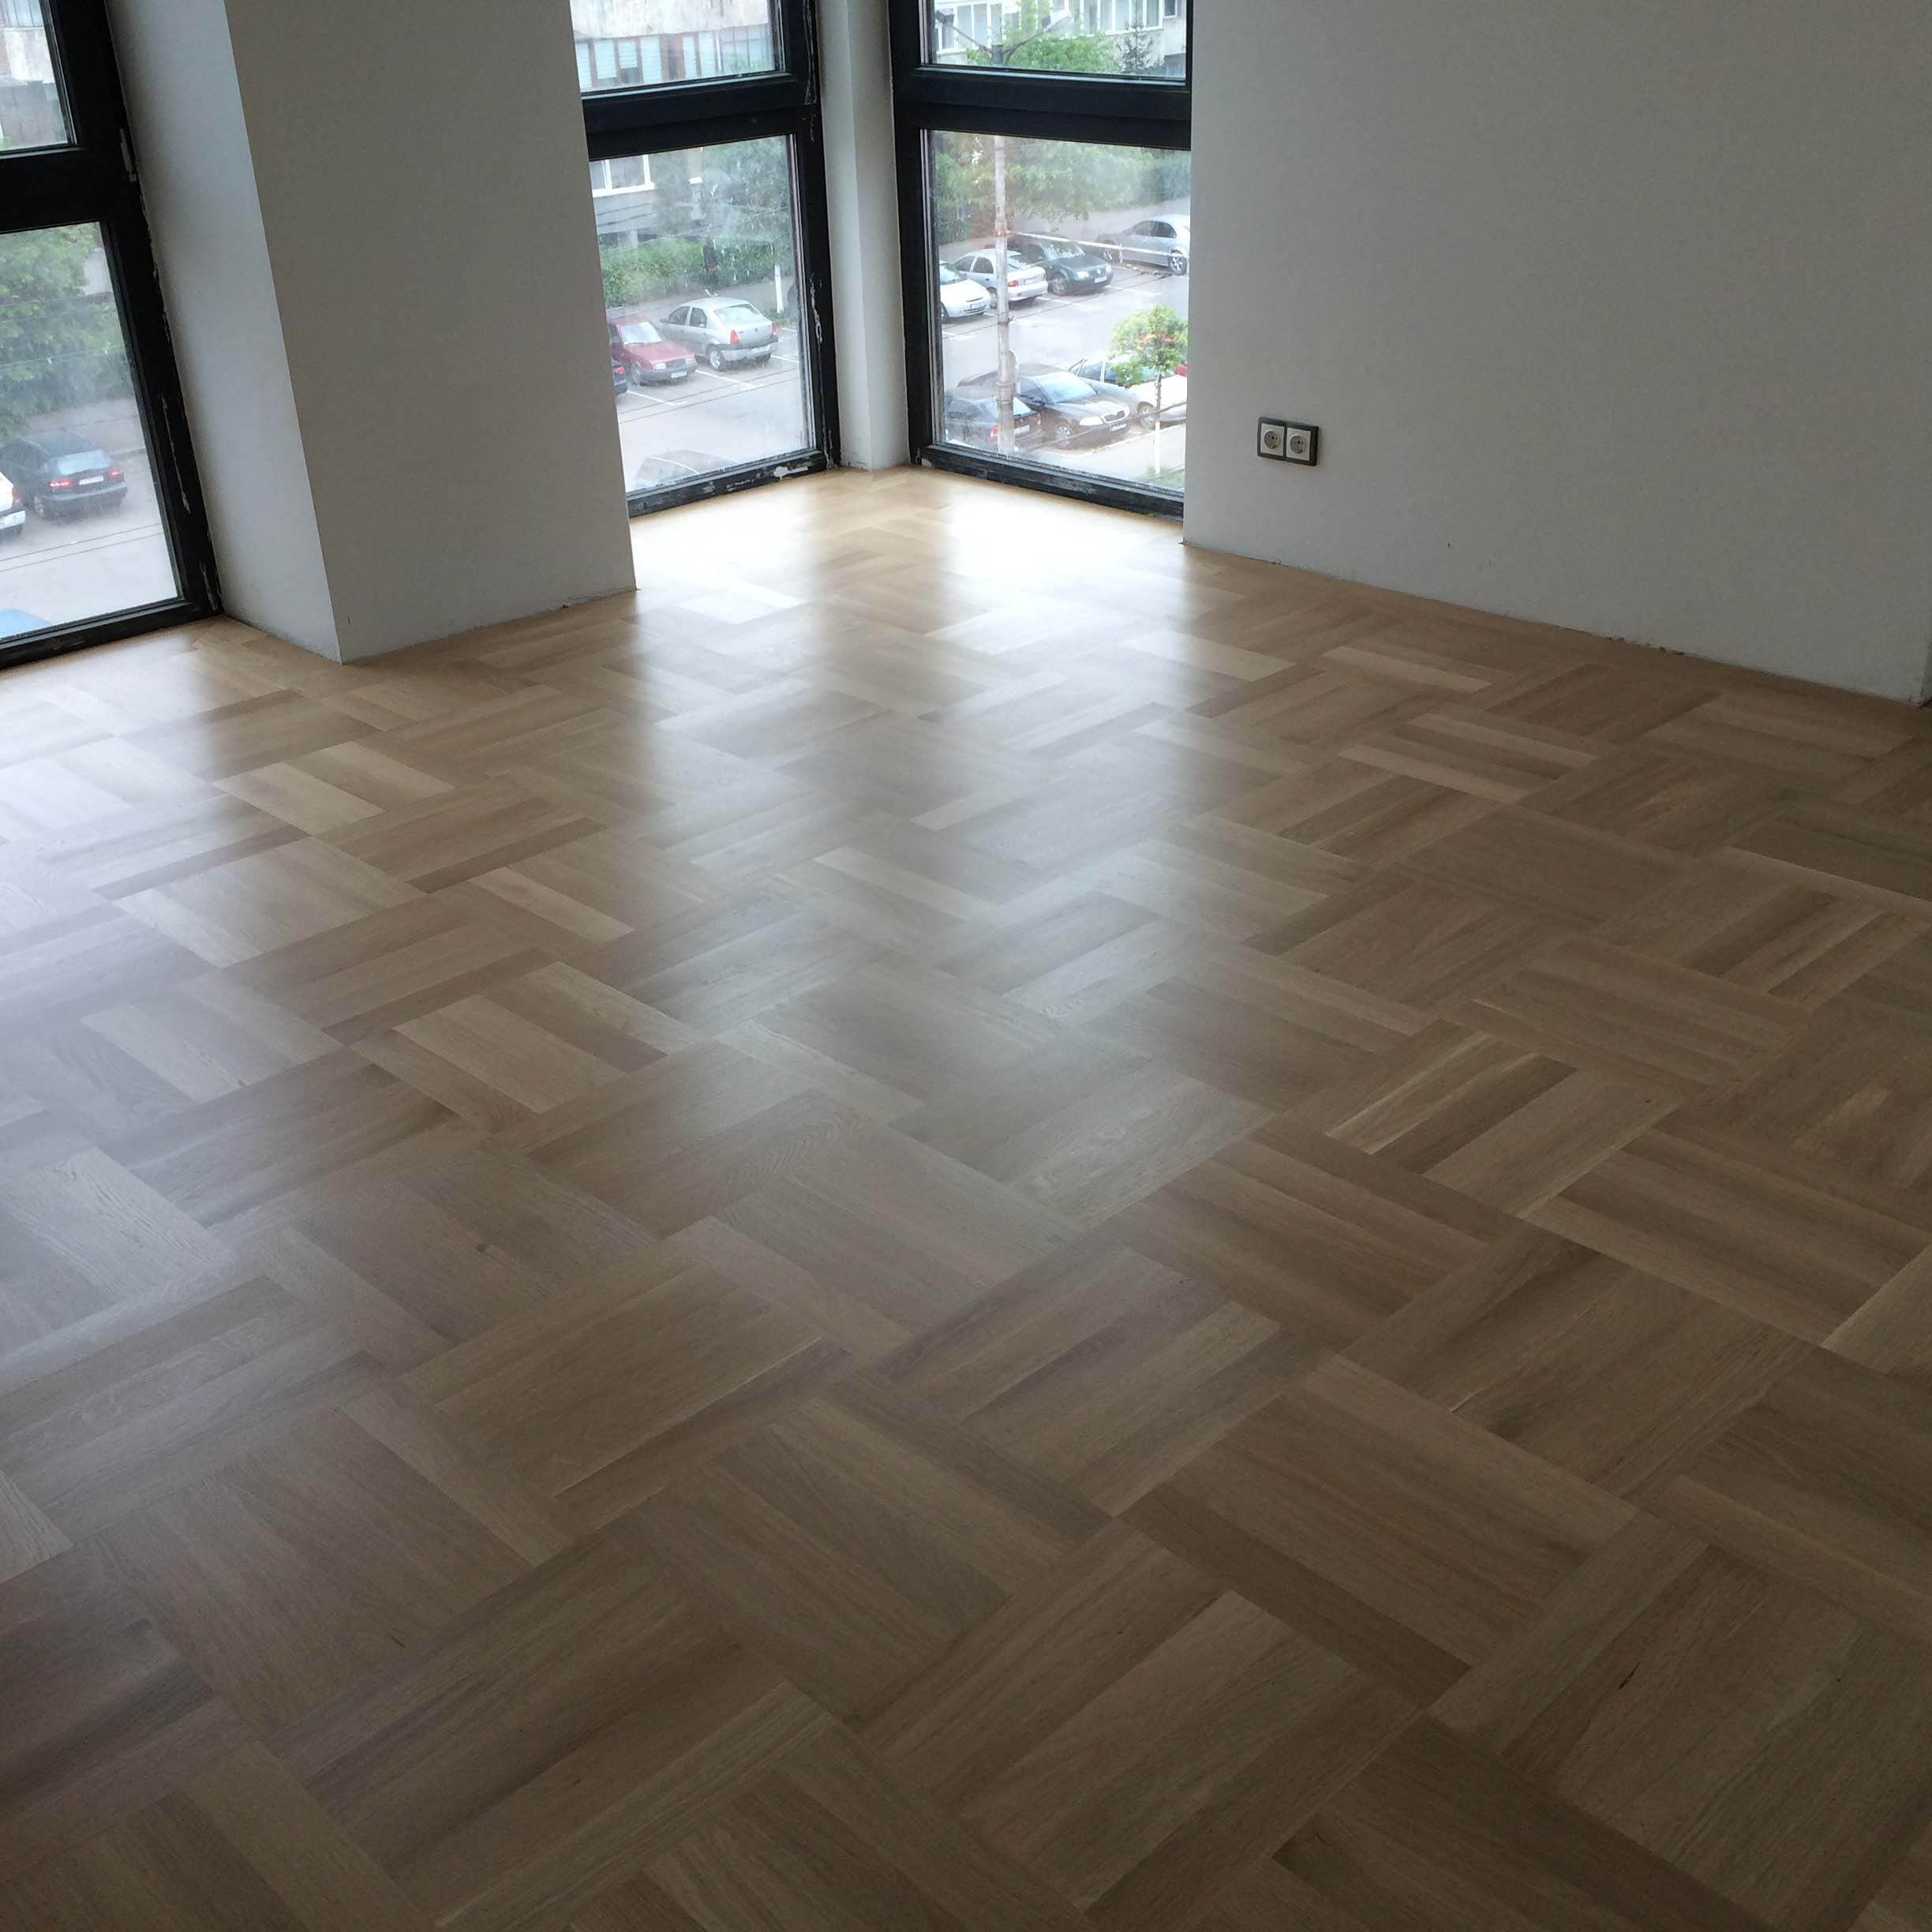 1.Oak Basketweave floor